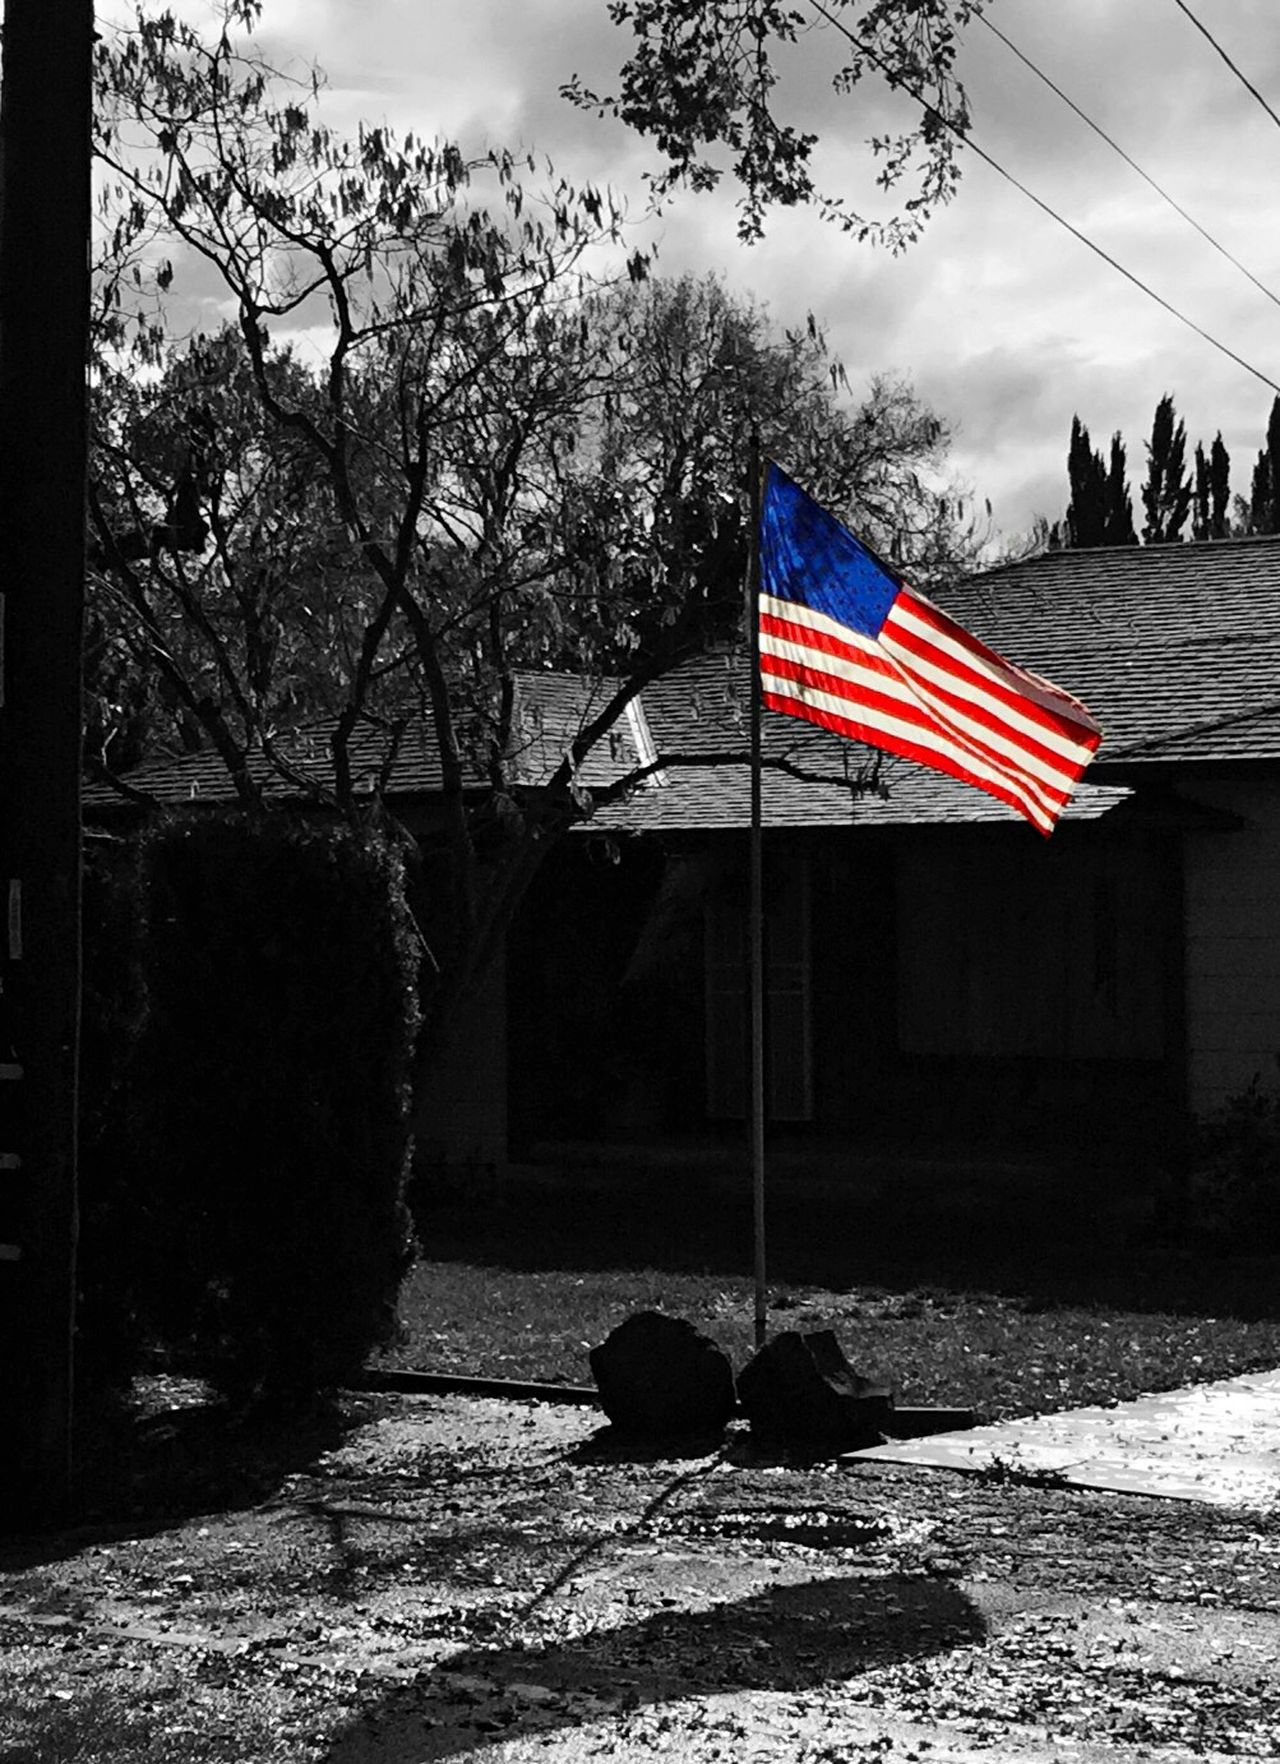 """""""Suburban America"""" The American flag flies proudly in the front yard of a suburban home in Northern California. American American Flag America Suburbia Suburban Suburban Landscape Blackandwhite Black And White Blackandwhite Photography Selective Color"""